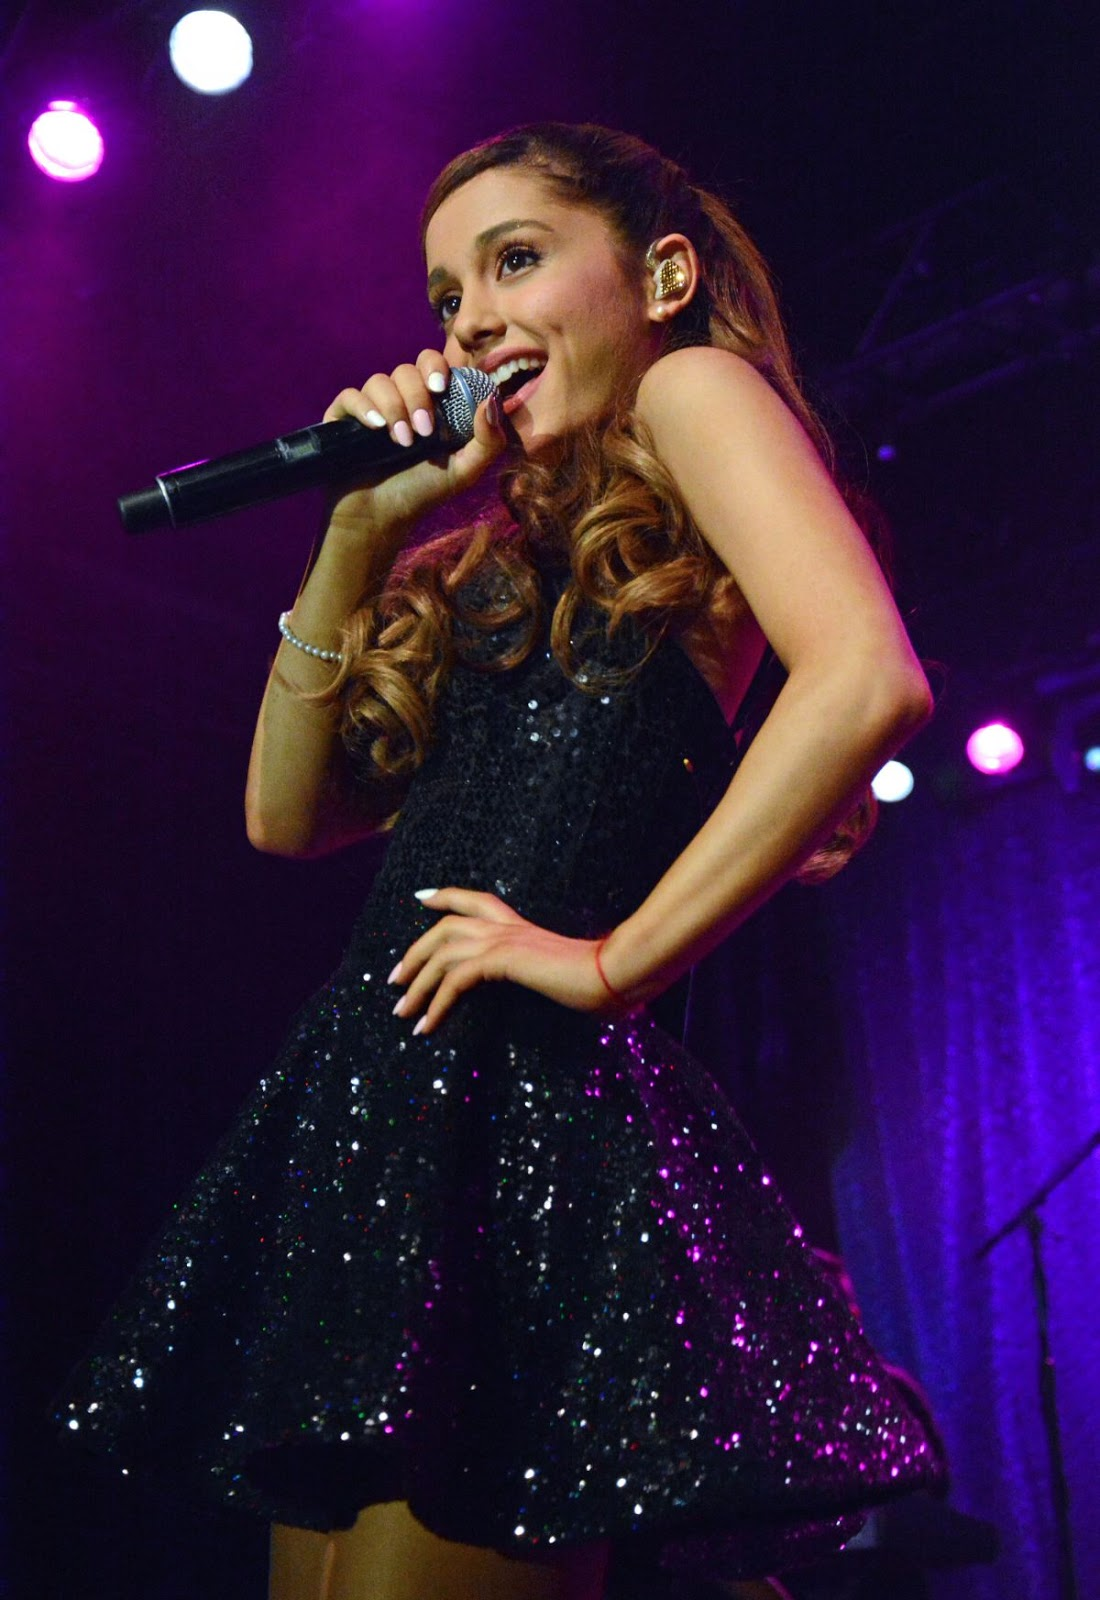 Ariana Grande En Traje De Baño The Look In The Mirror Style Idol Ariana Grande